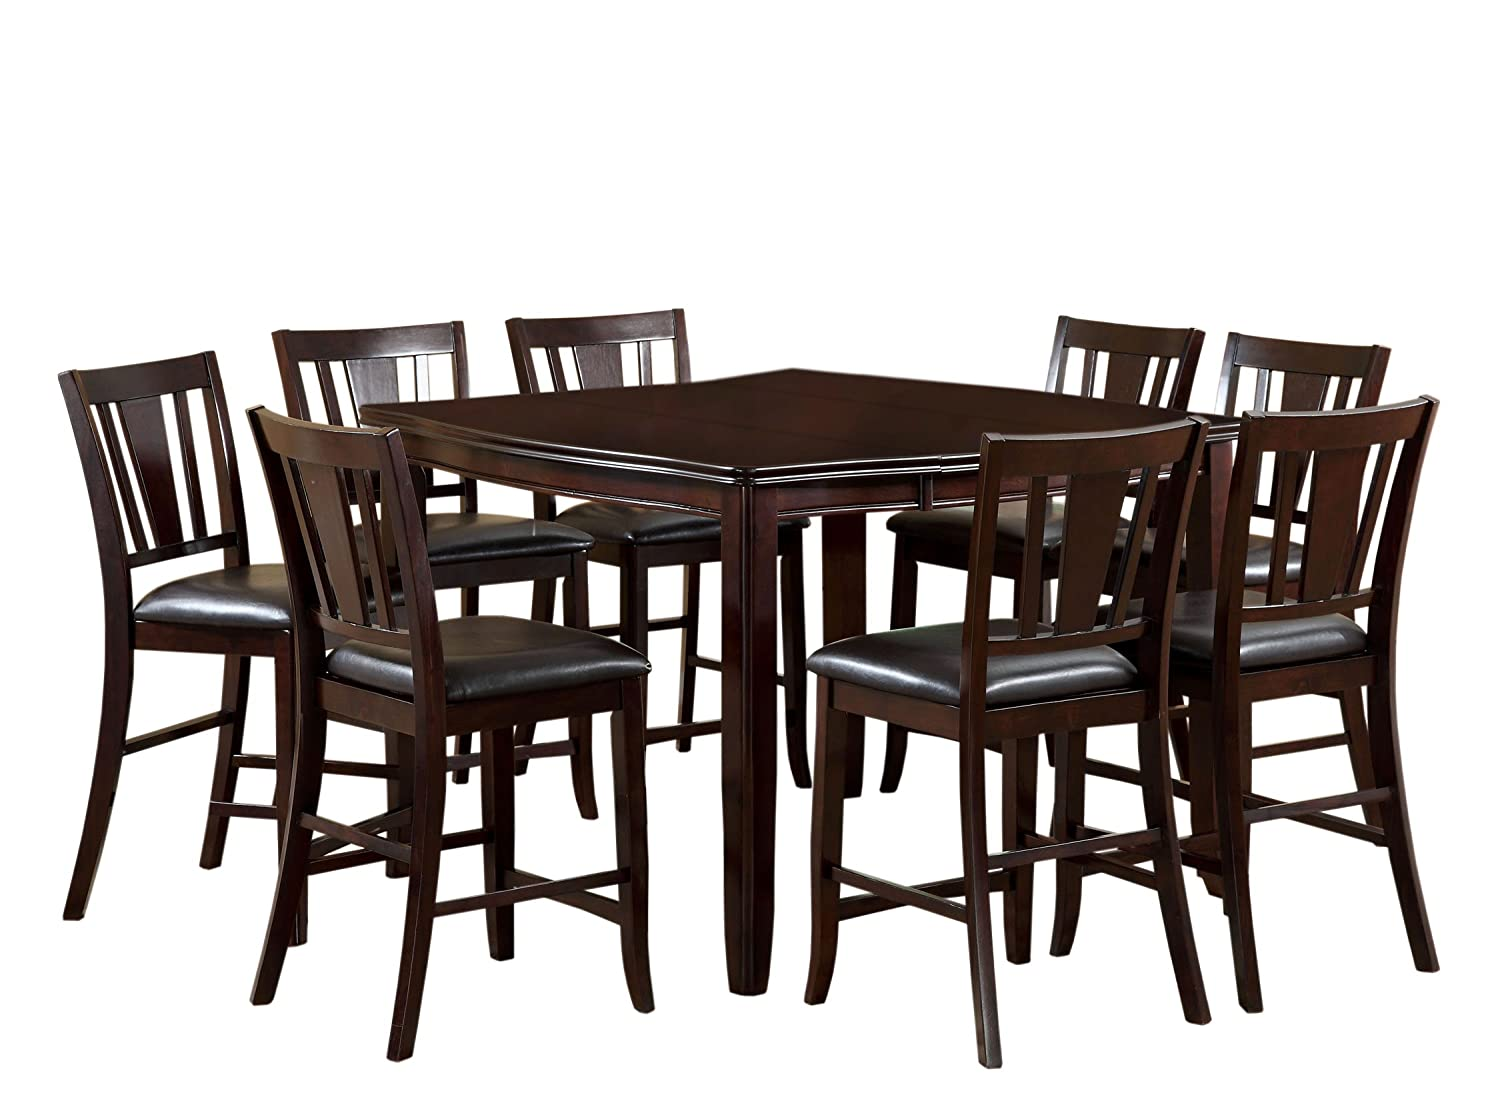 Amazon.com: Furniture Of America Anlow 7 Piece Counter Height Table Set  With 16 Inch Leaf, Espresso Finish: Kitchen U0026 Dining